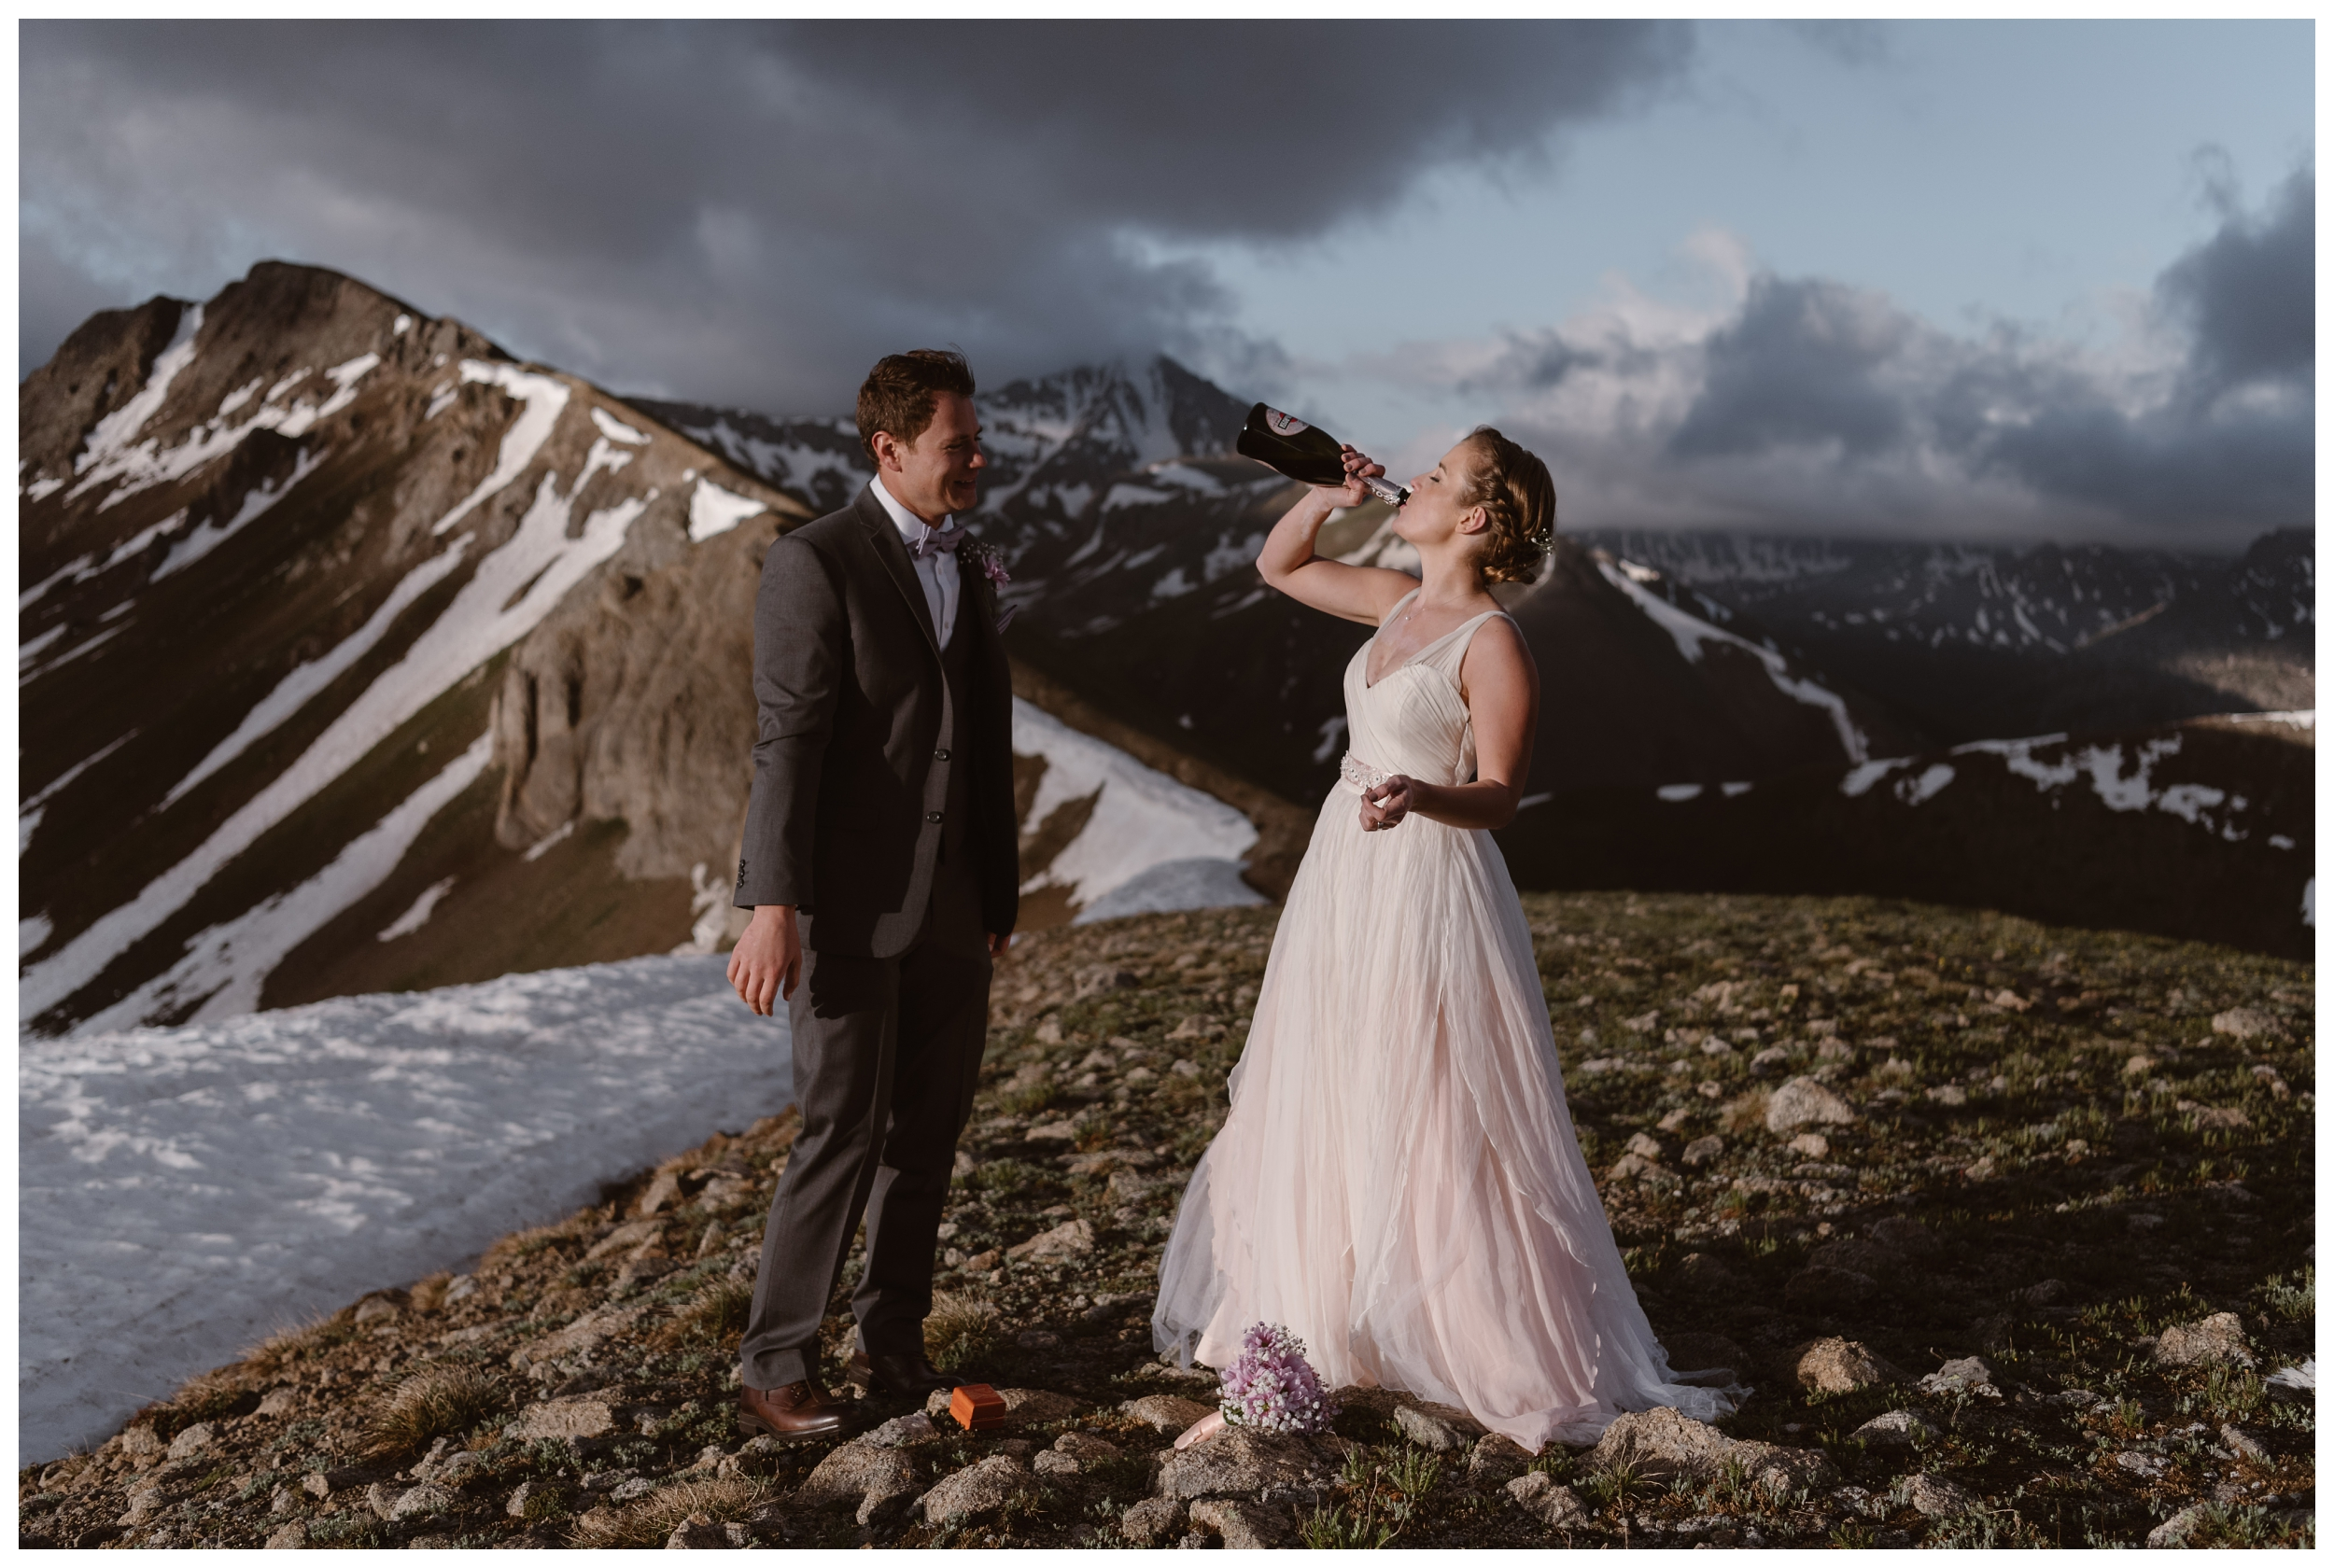 To celebrate their elopement ceremony, Marcela and Vasily opened a bottle of champagne and drank it while surrounded by the jagged peaks of the Sawatch Range of the Rocky Mountains. Photo by Maddie Mae, Adventure Instead.